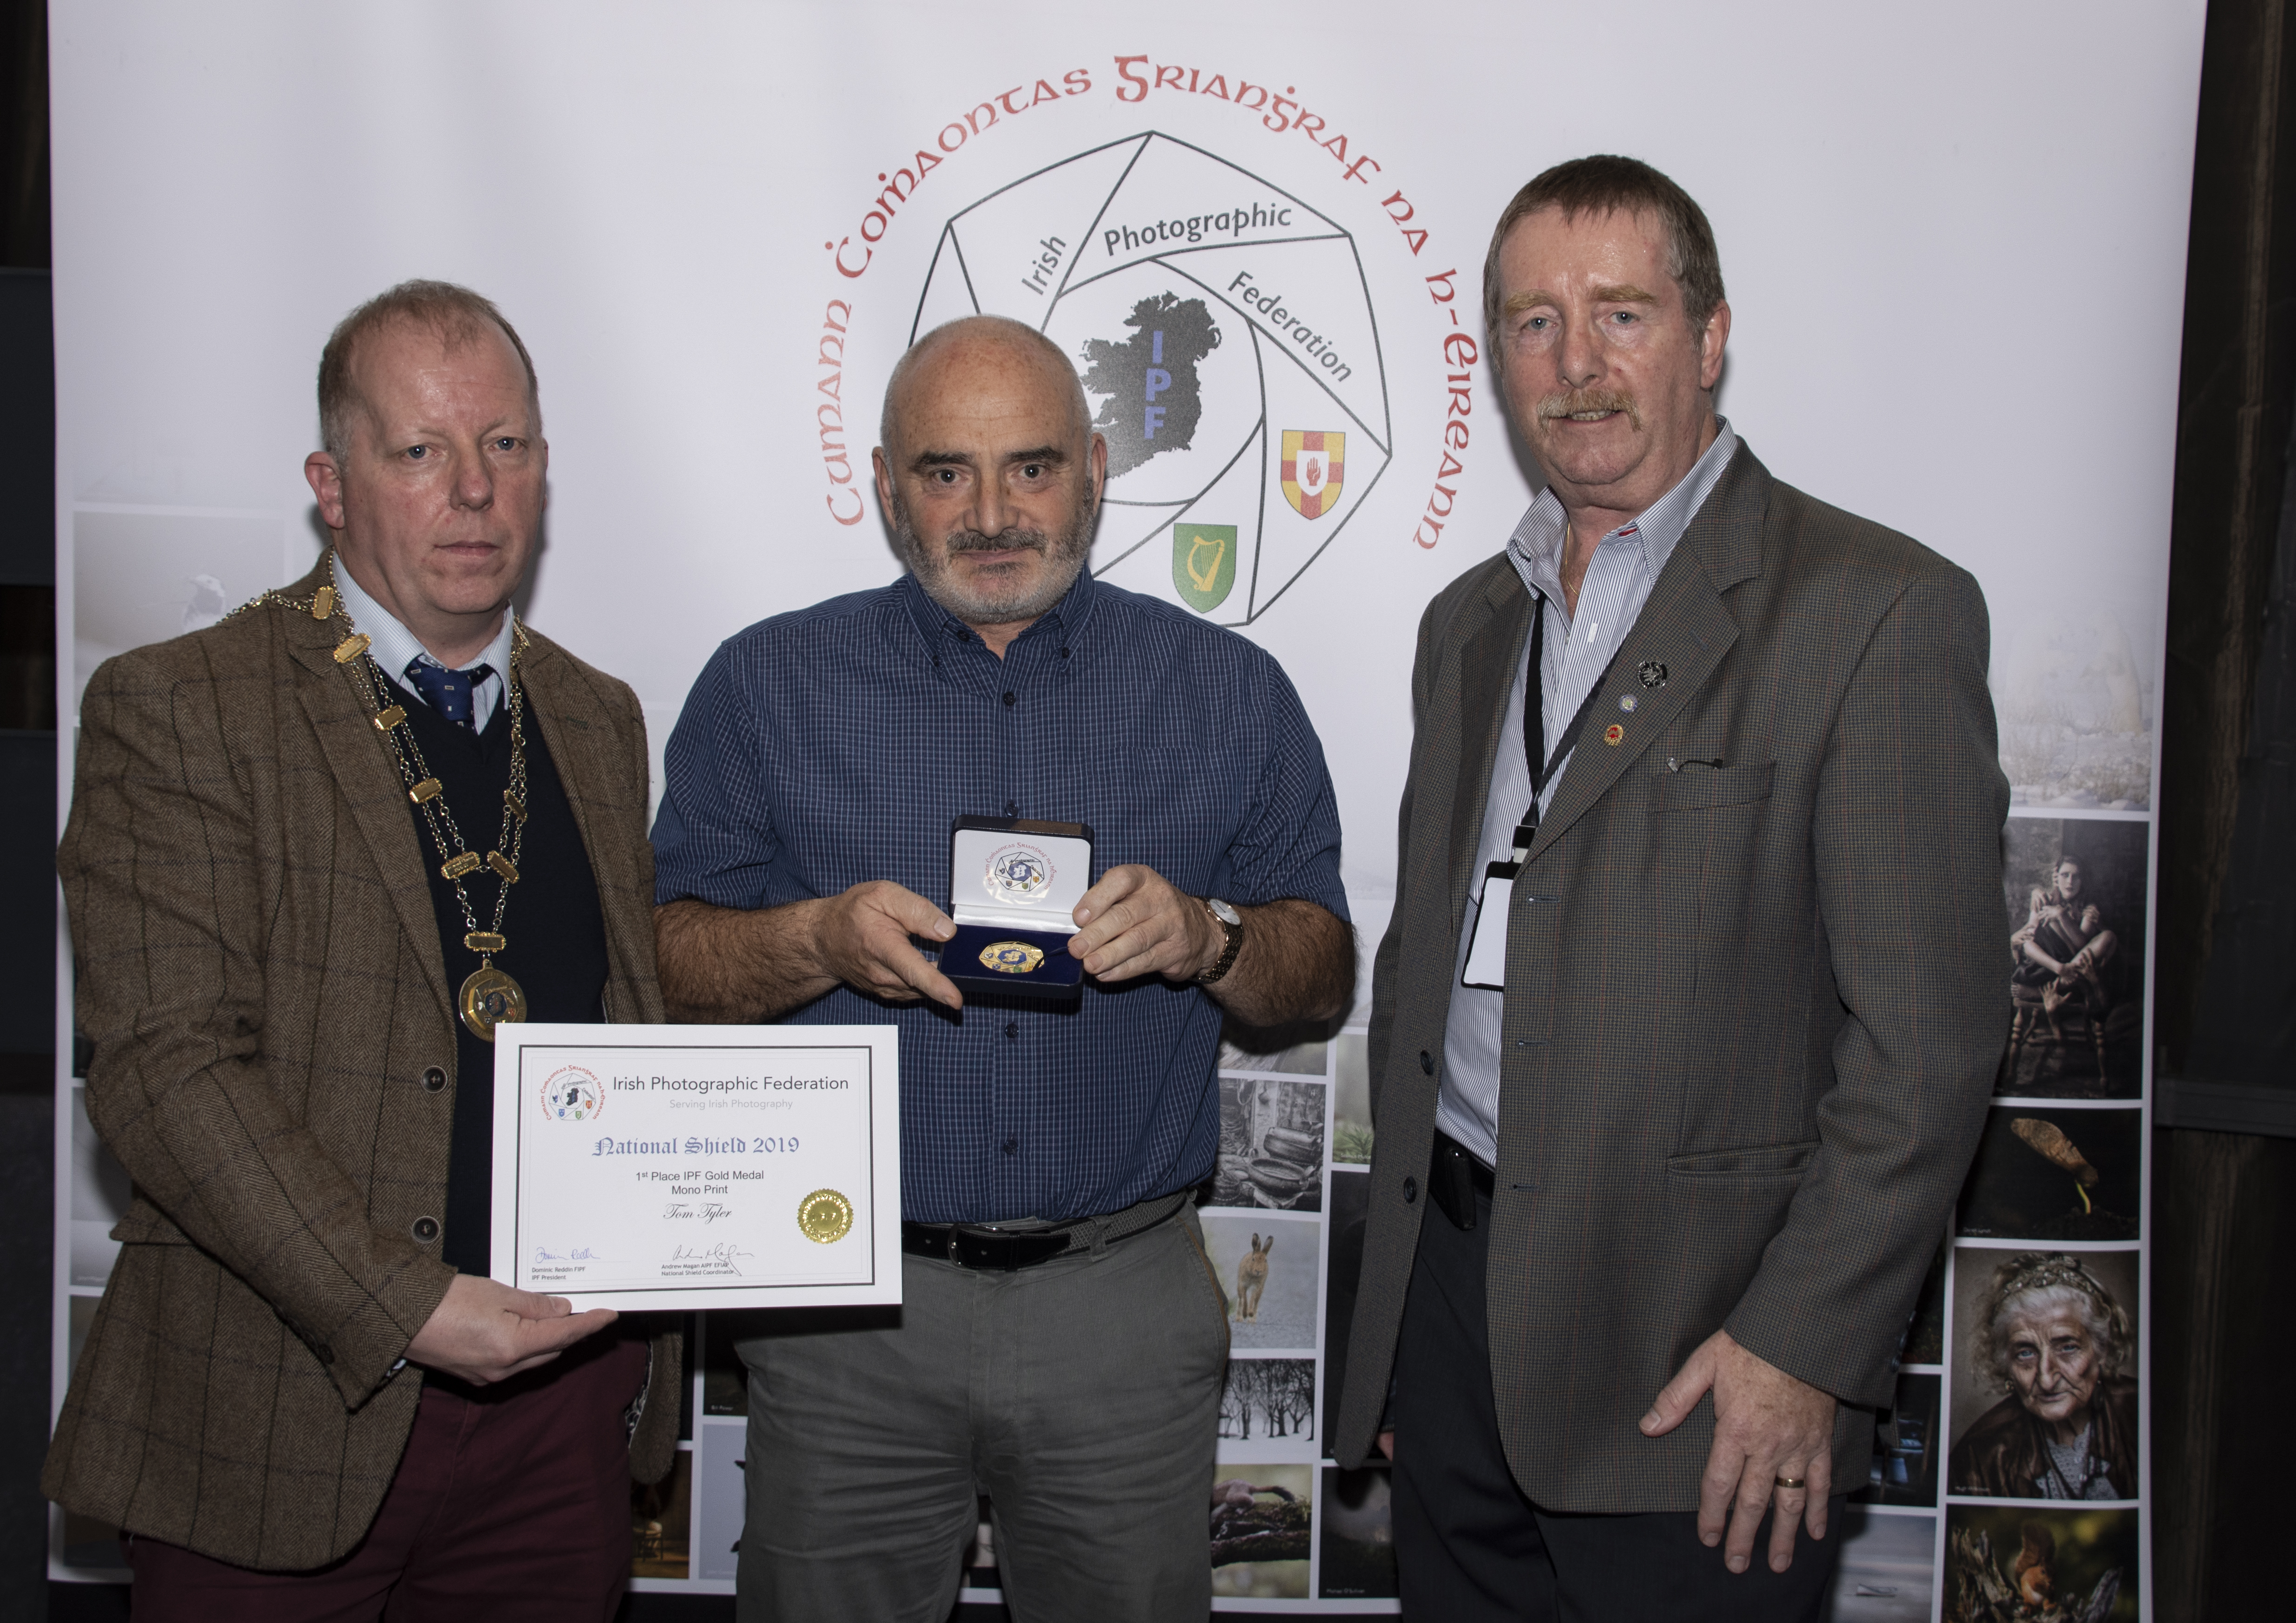 Mono, IPF GOLD Medal Plus Certificate, Tom Tyler – Poker Faces – Waterford Camera Club